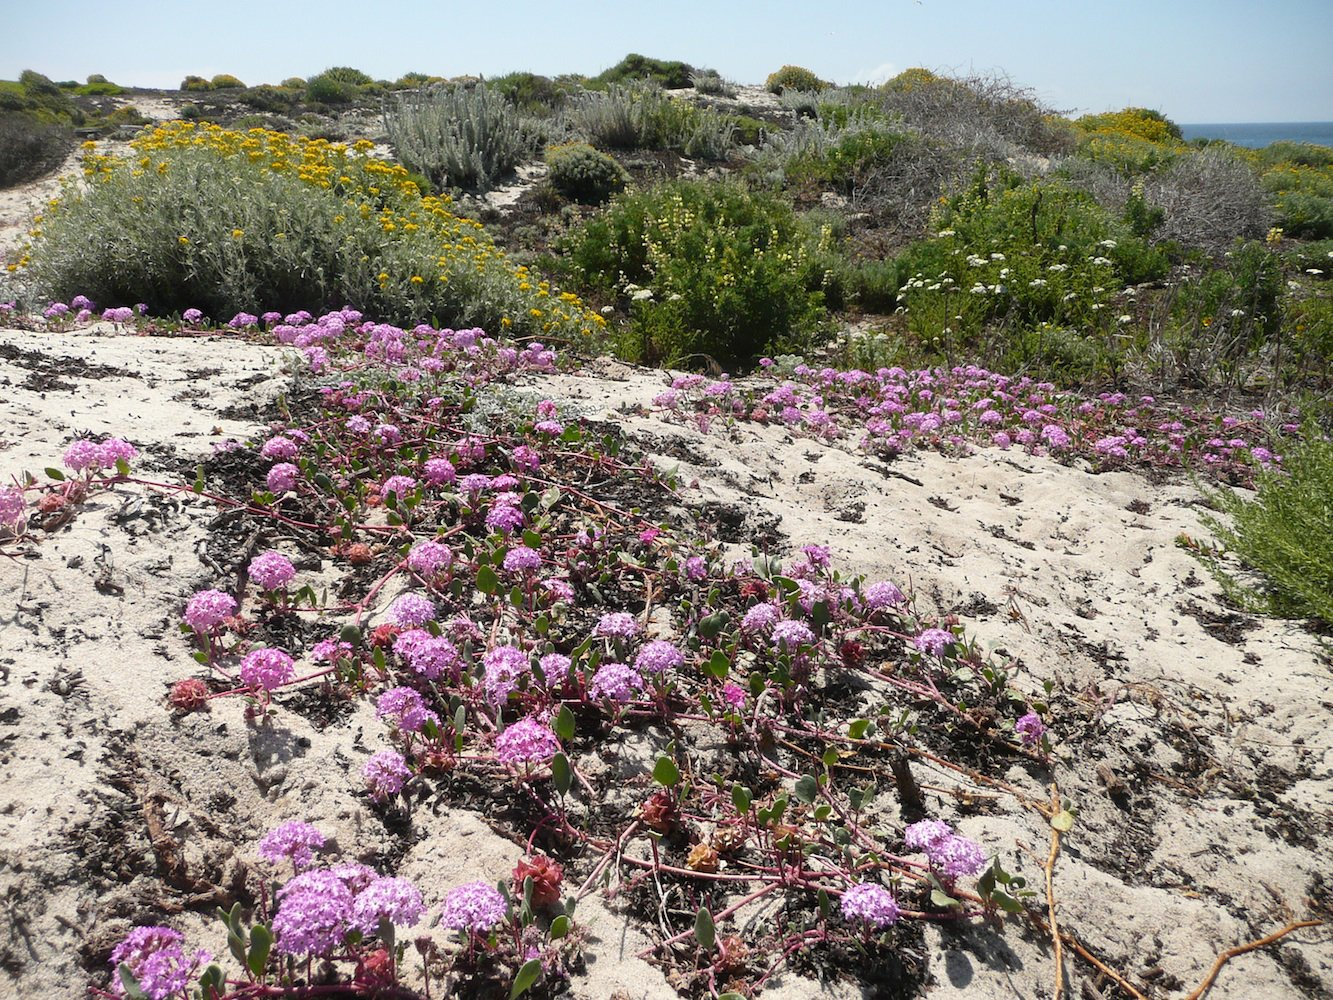 Pacific Grove Dune Restoration by John Wandke.